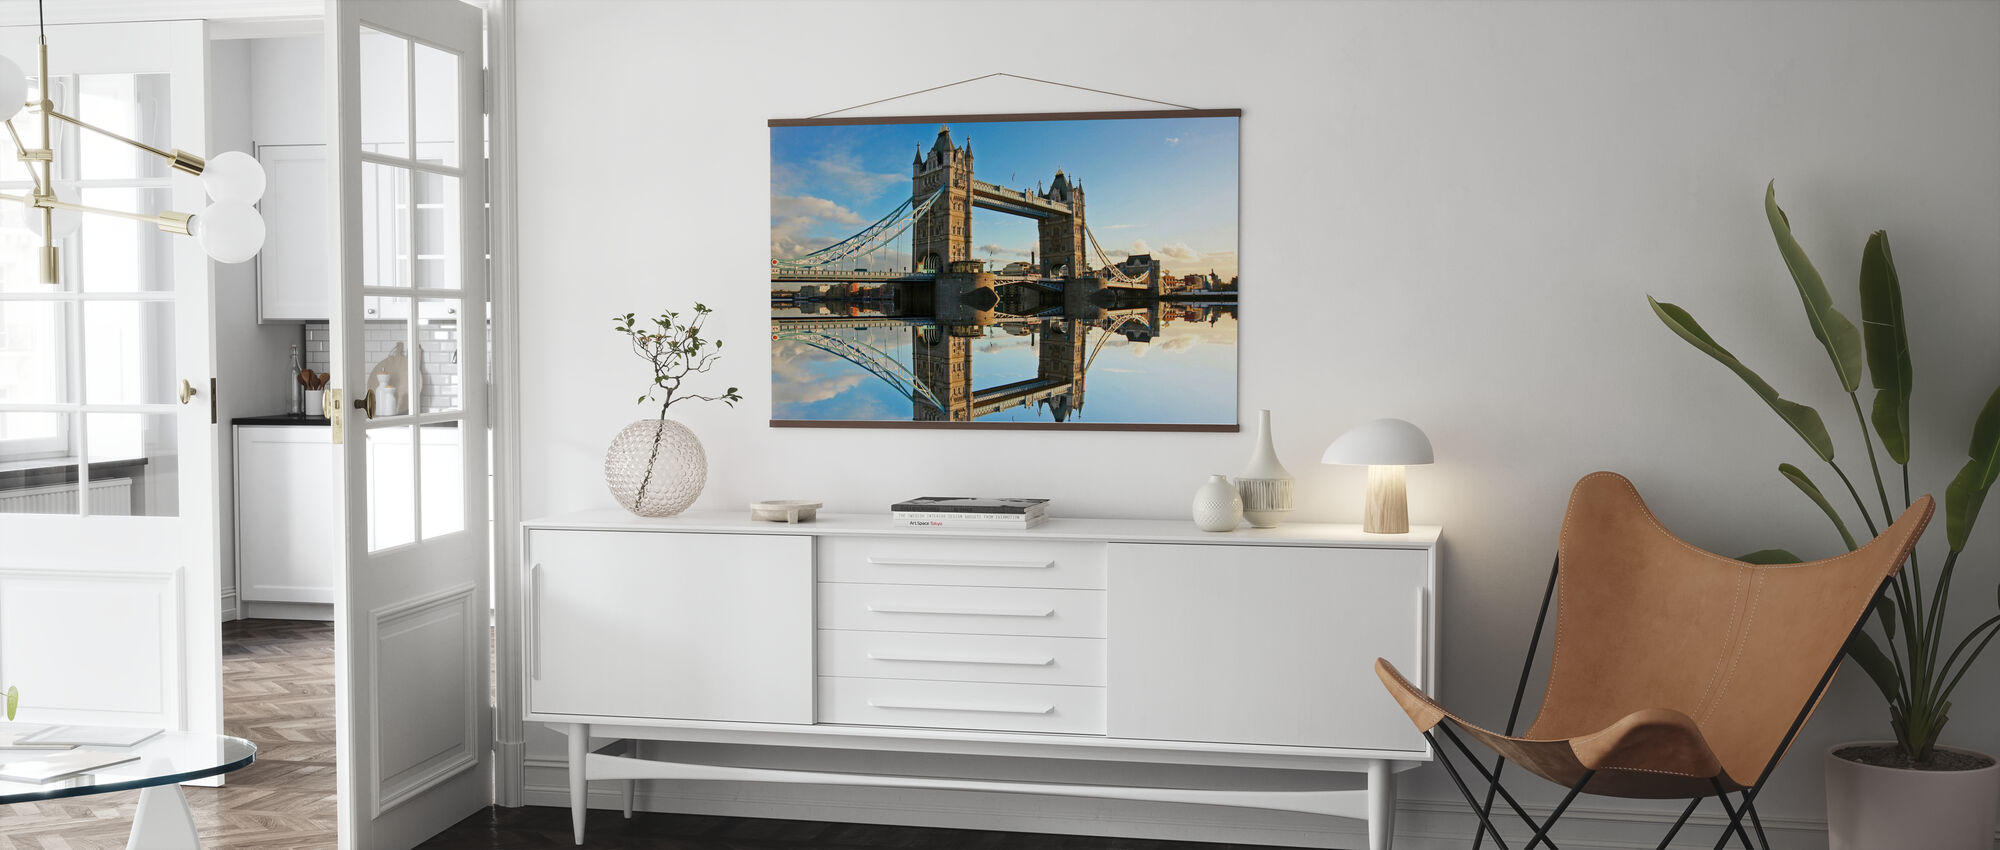 Tower Bridge at Sunset - Poster - Living Room